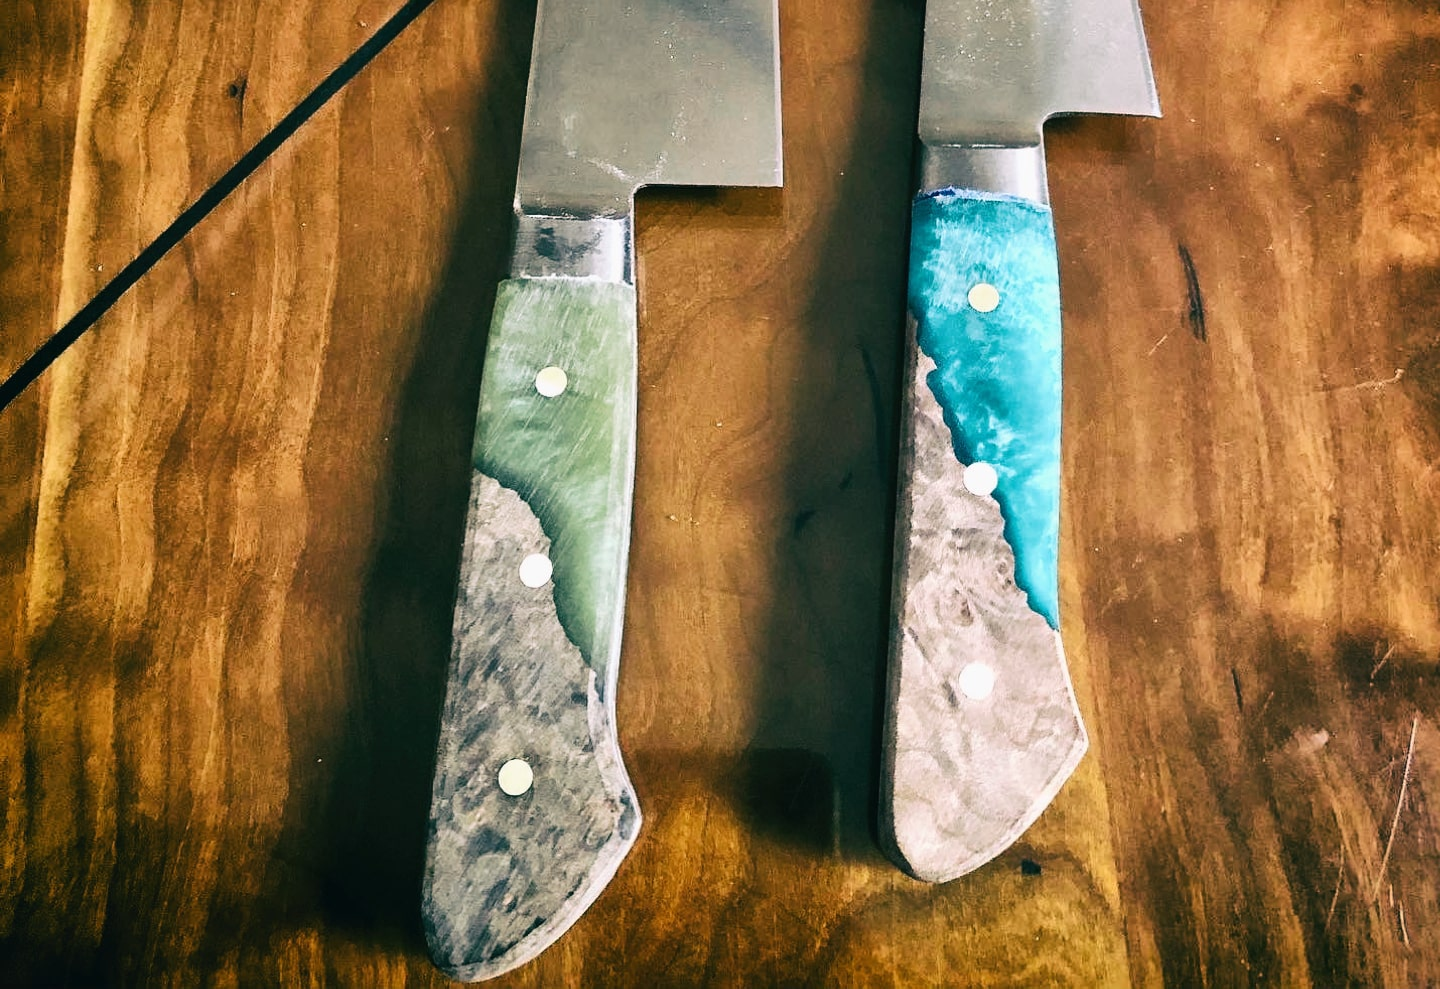 Custom hand-crafted knives, courtesy of Drew's metalworking talents.